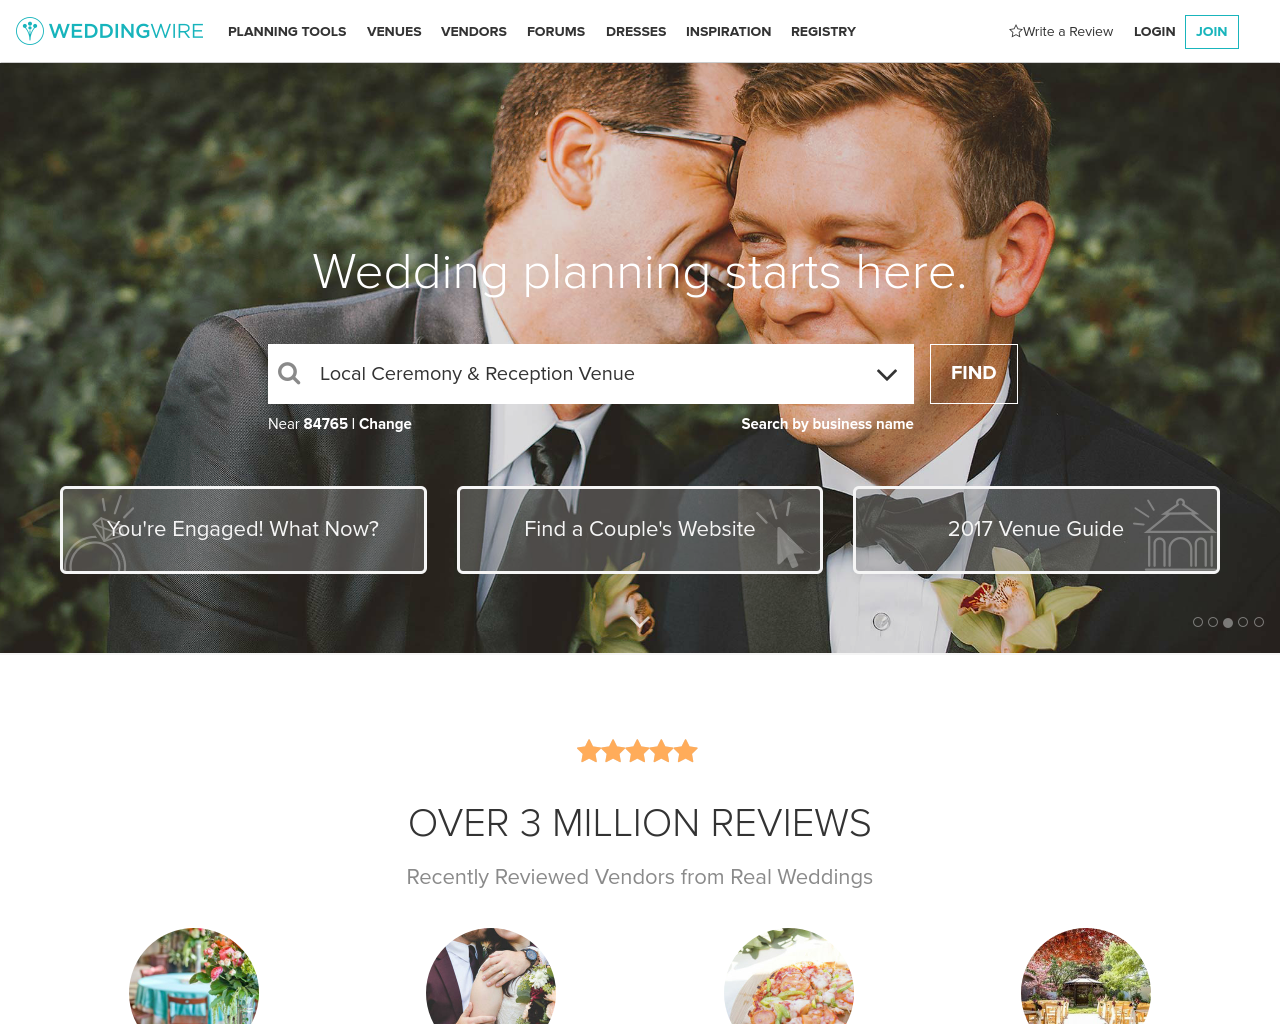 Wedding-Wire-Advertising-Reviews-Pricing